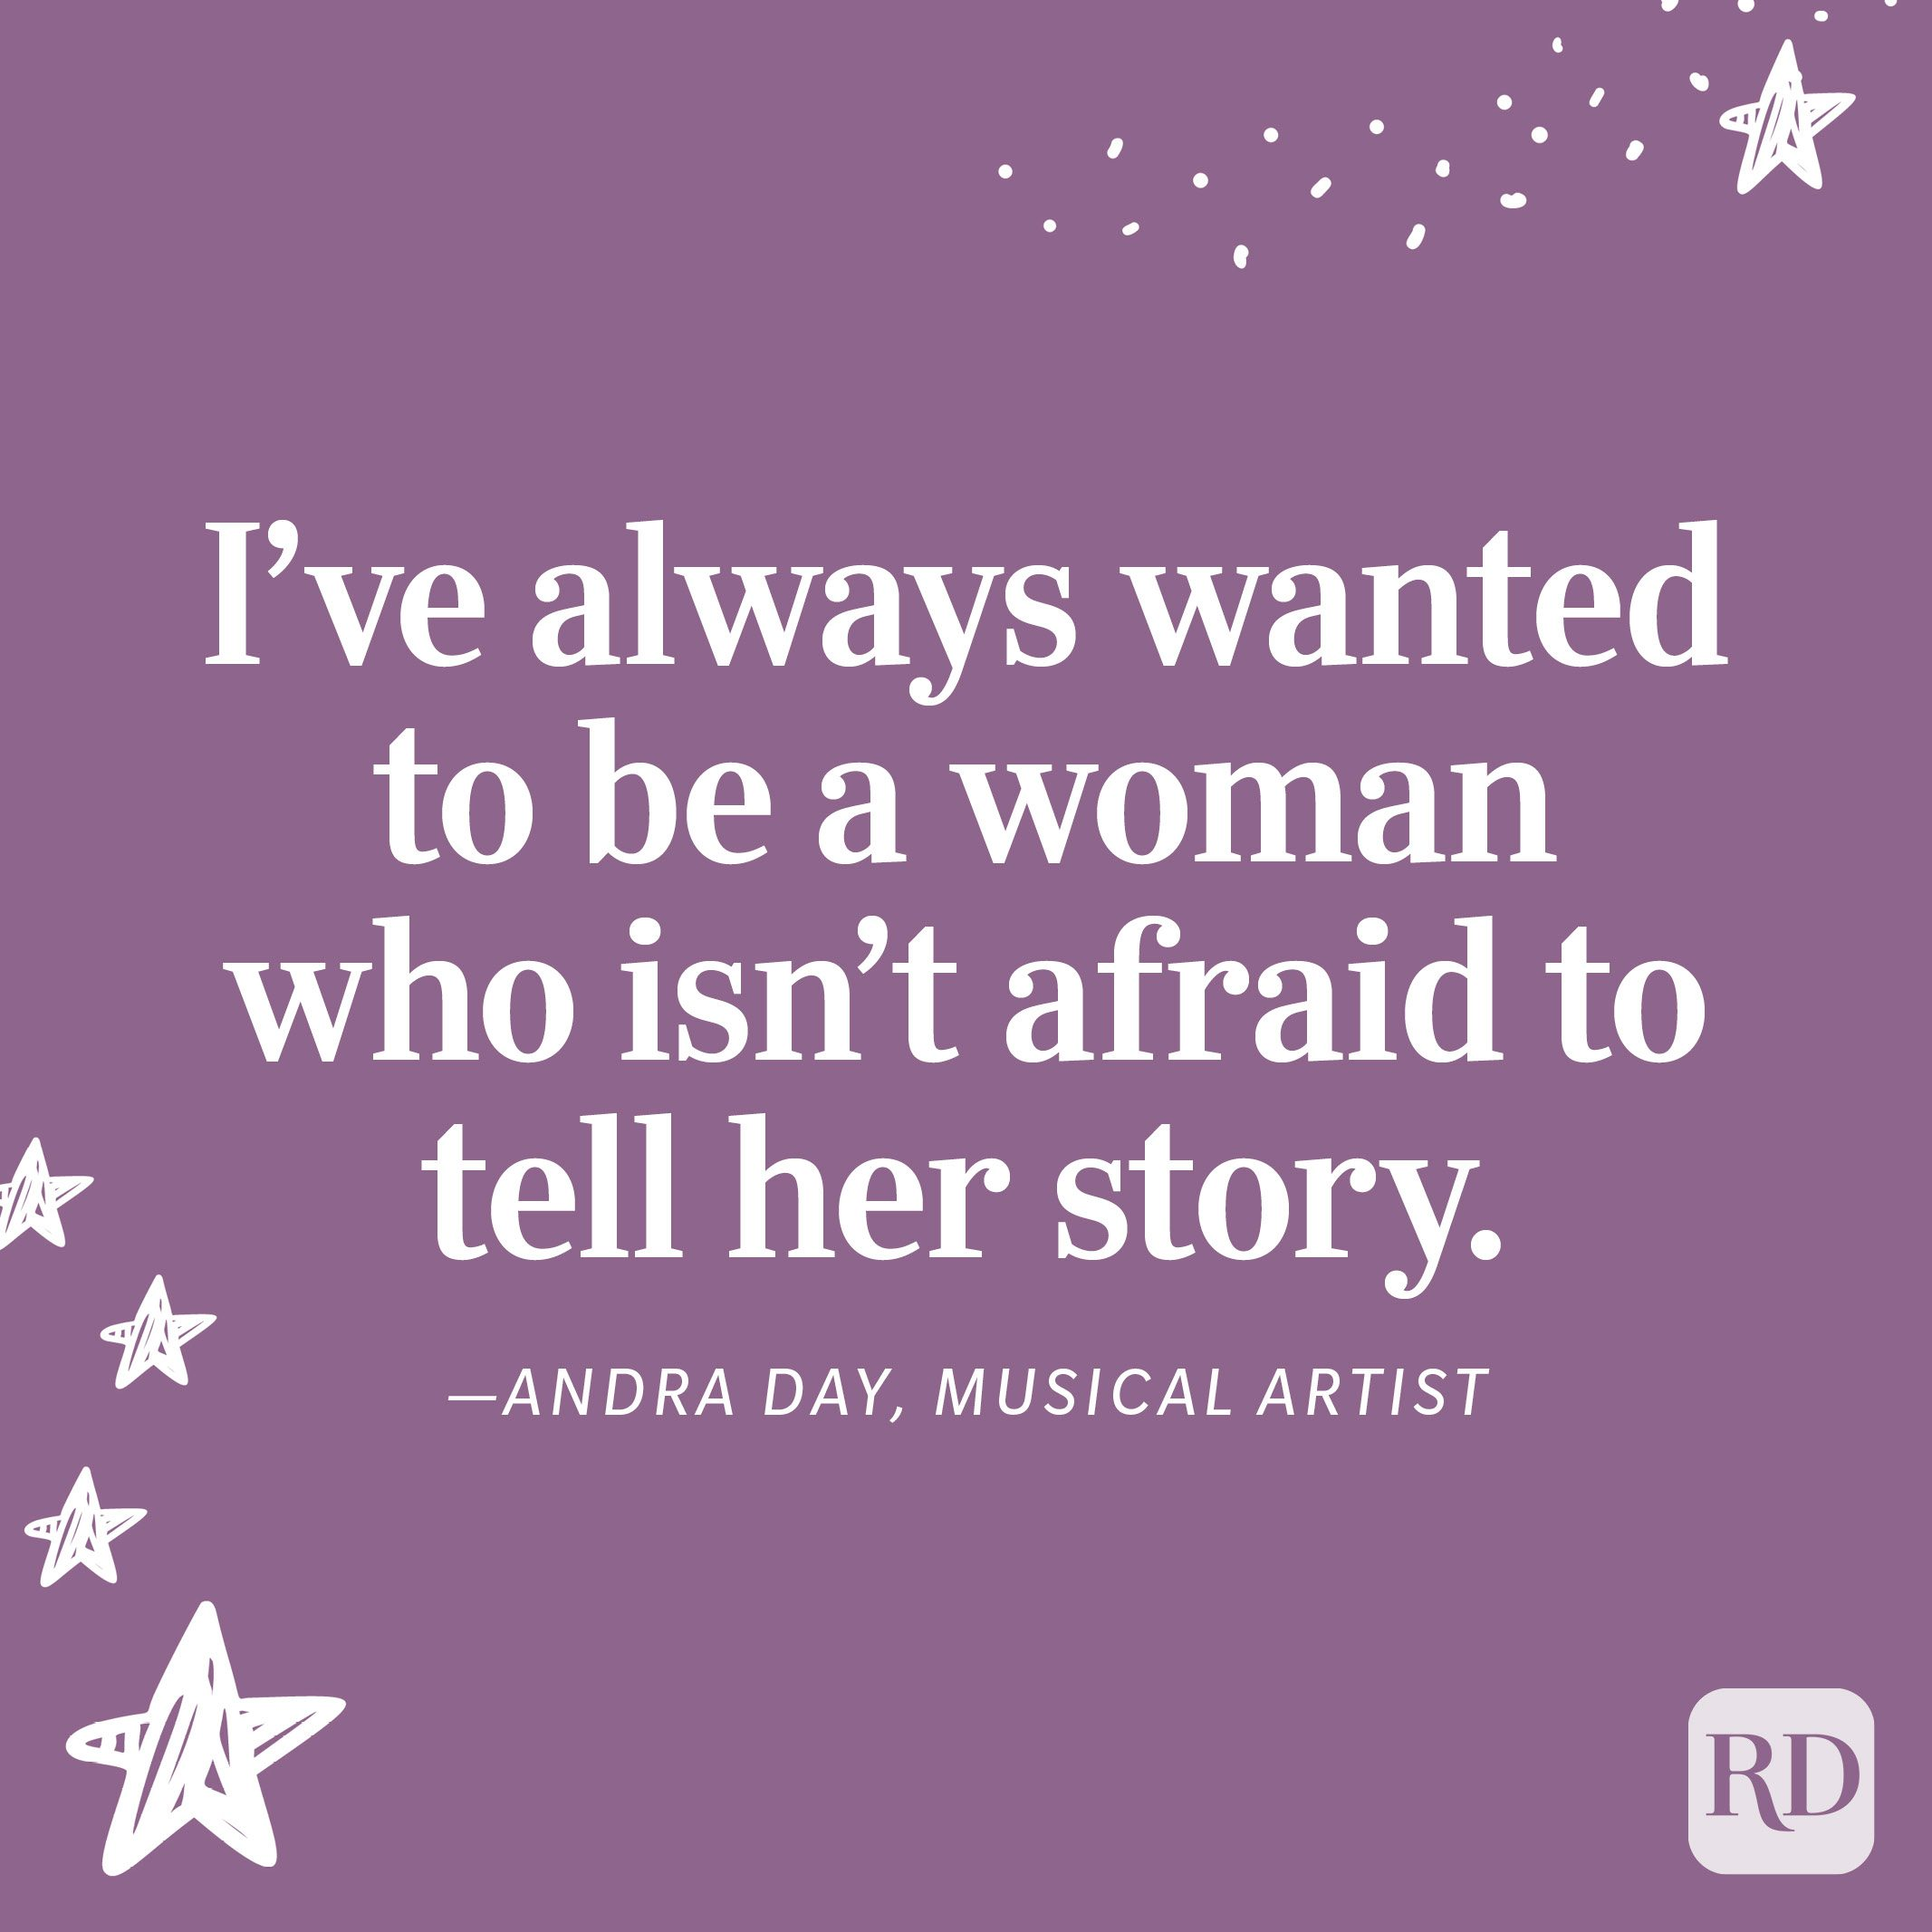 """""""I've always wanted to be a woman who isn't afraid to tell her story."""" —Andra day, musical artist"""